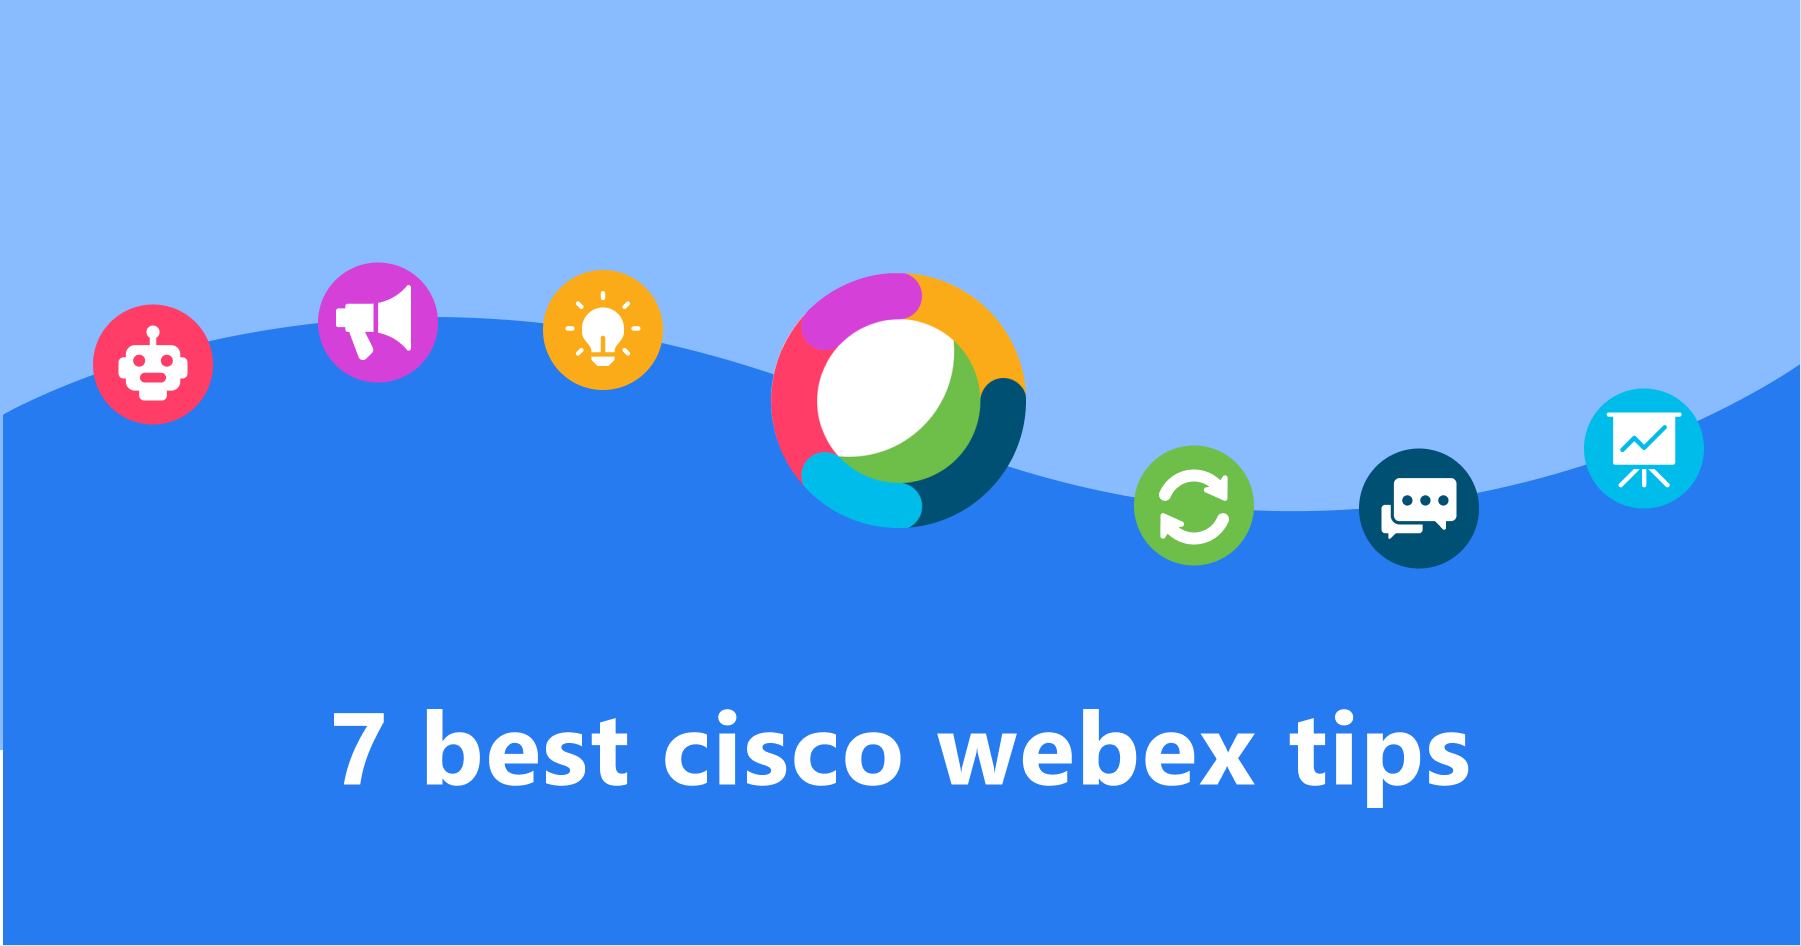 7 Cisco Webex Teams Hacks to Make Your Team More Efficient